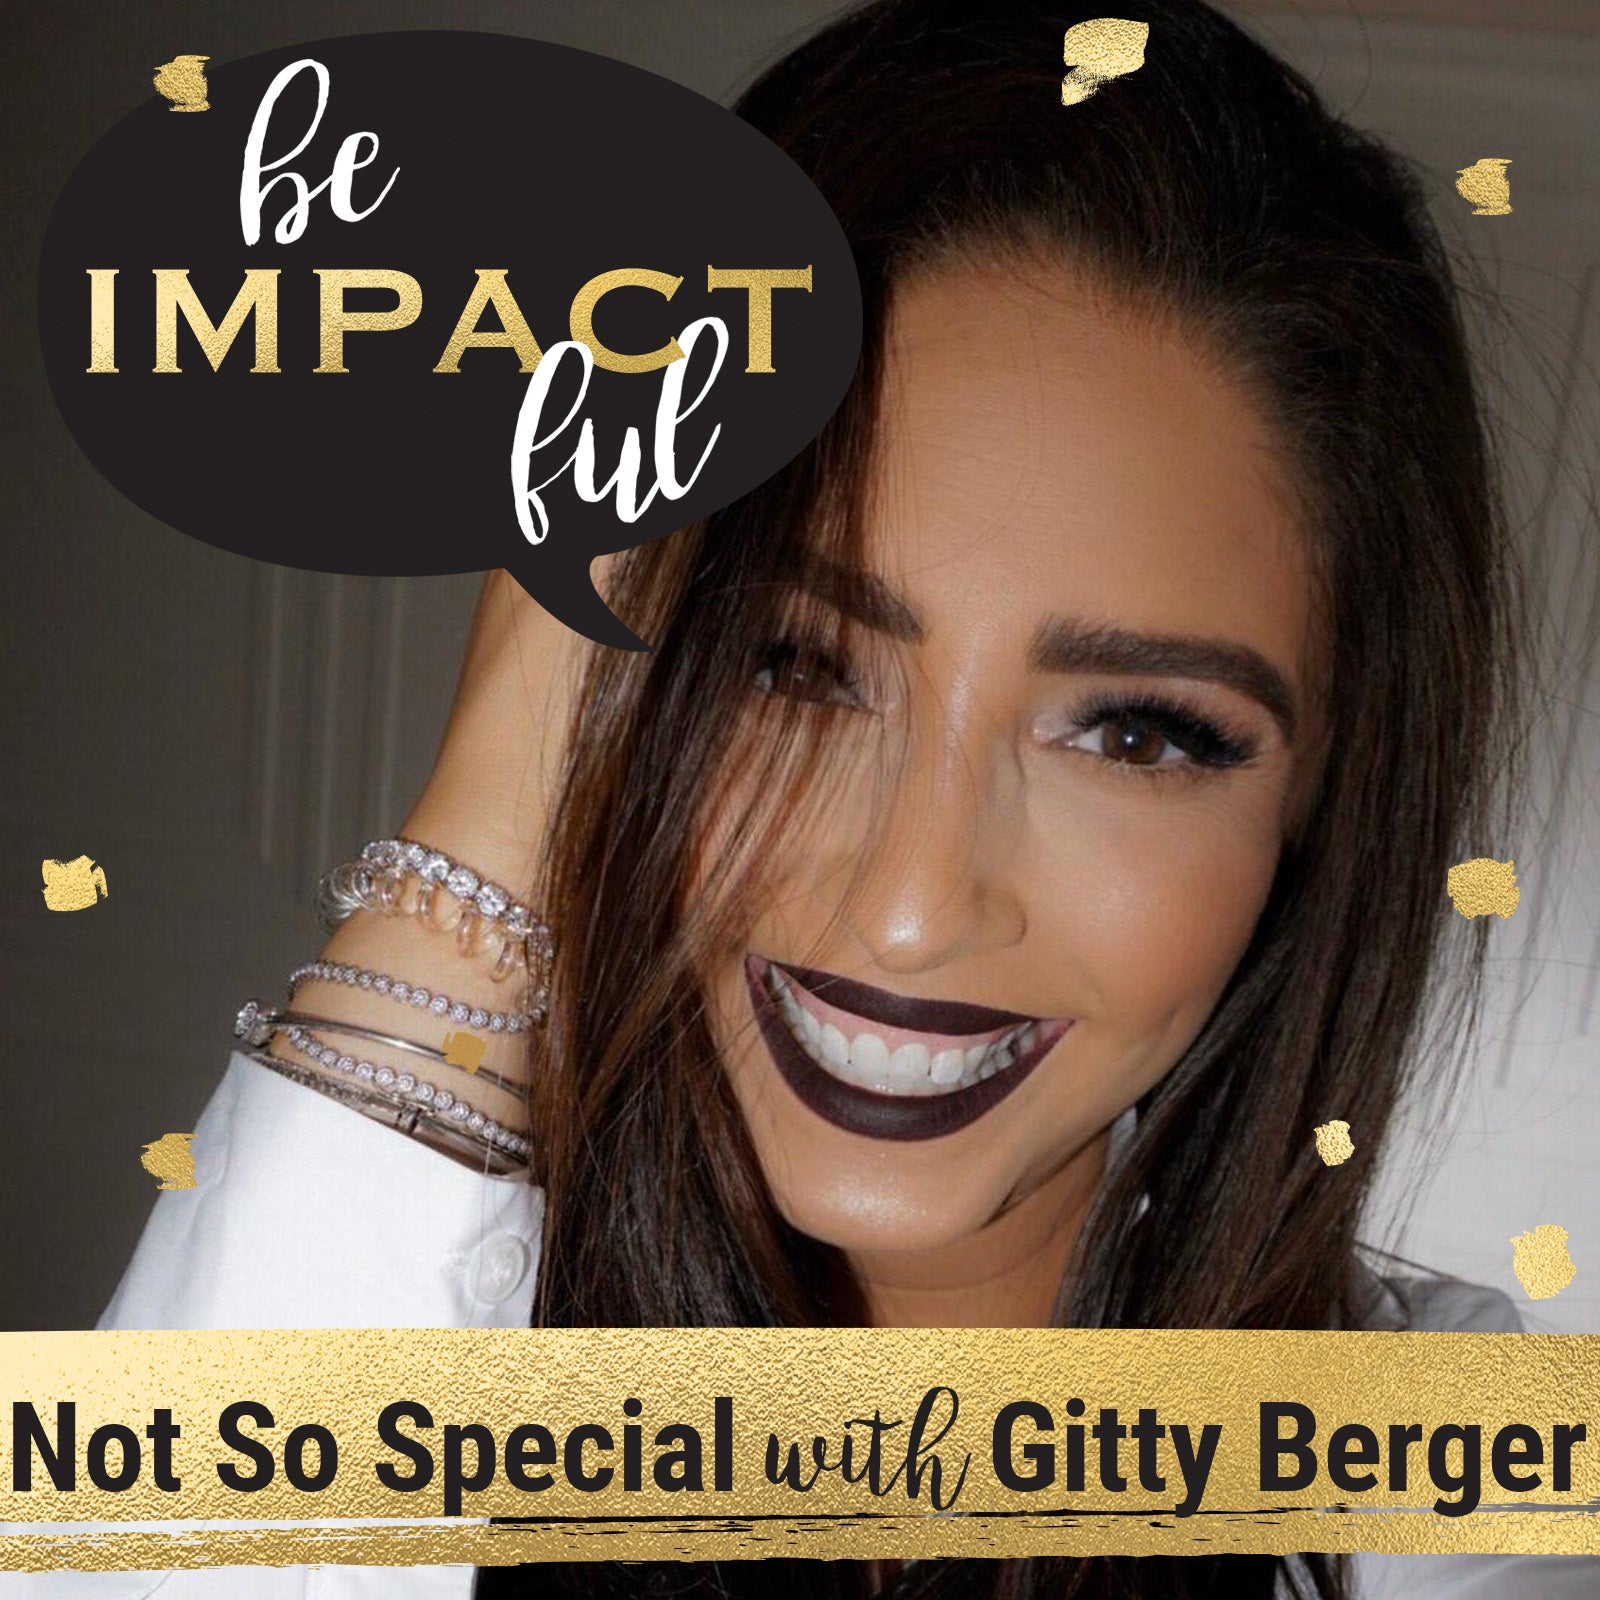 Not So Special with Gitty Berger